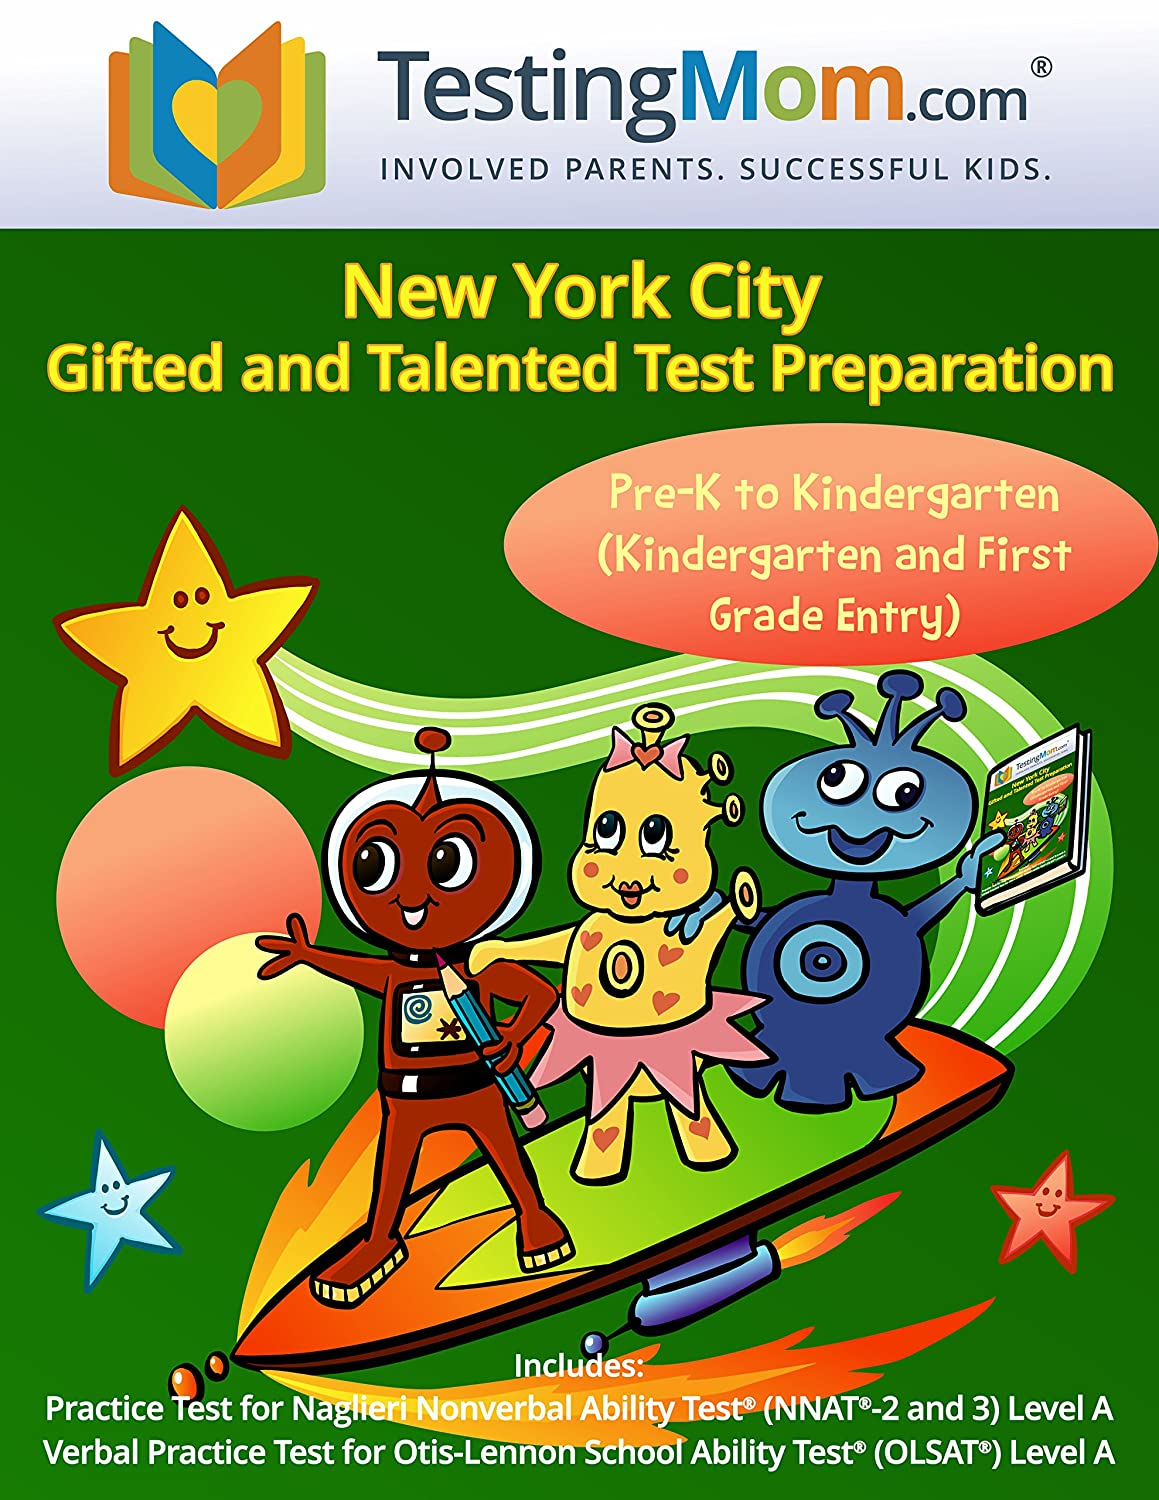 Amazon.com: NYC Gifted and Talented Test Preparation Workbook for OLSAT and NNAT2 Level A – Pre-K and Kindergarten: TestingMom.com: Home & Kitchen